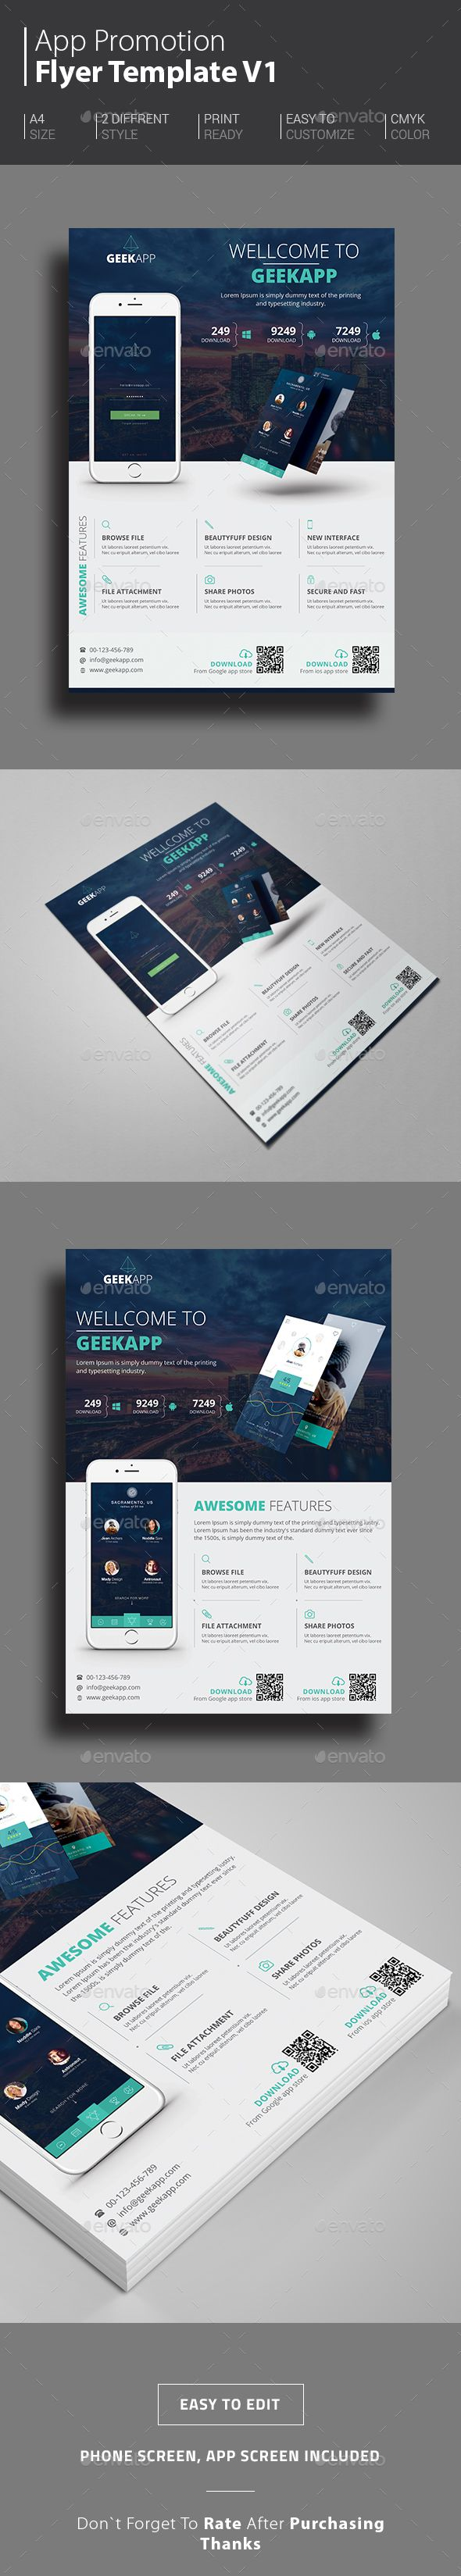 Mobile App Flyer - App Flyers Template | Download http://graphicriver.net/item/mobile-app-flyer/14467216?ref=themedevisers